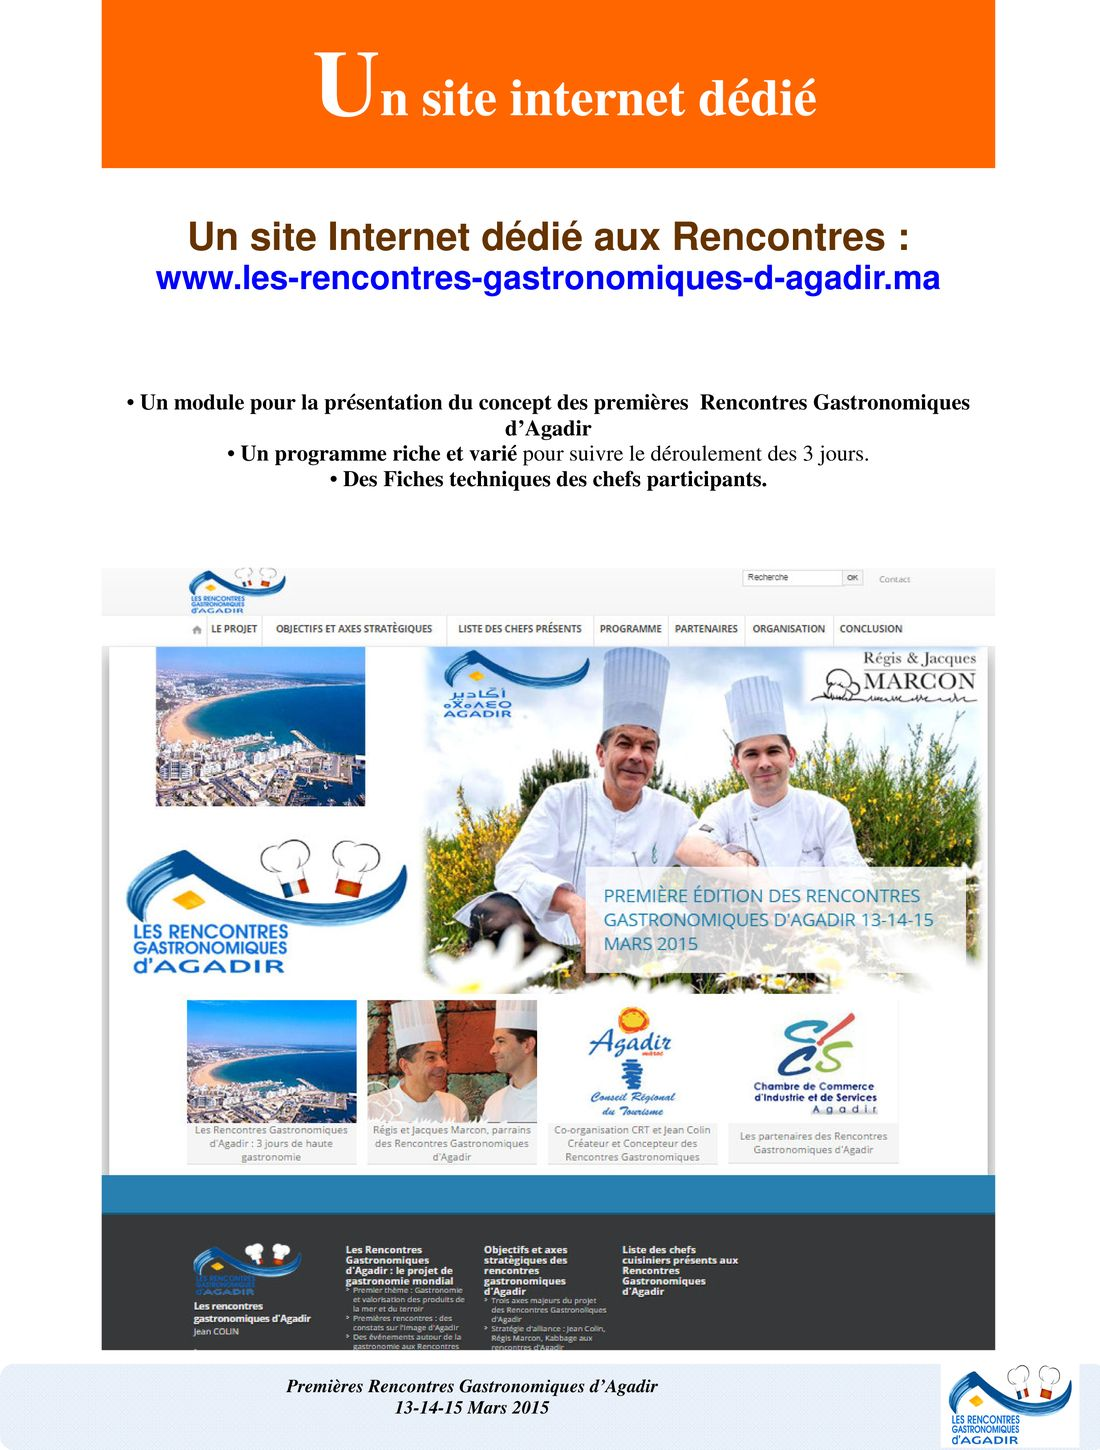 Dossier Press-Rencontres Gastronomiques d'Agadir-version finale